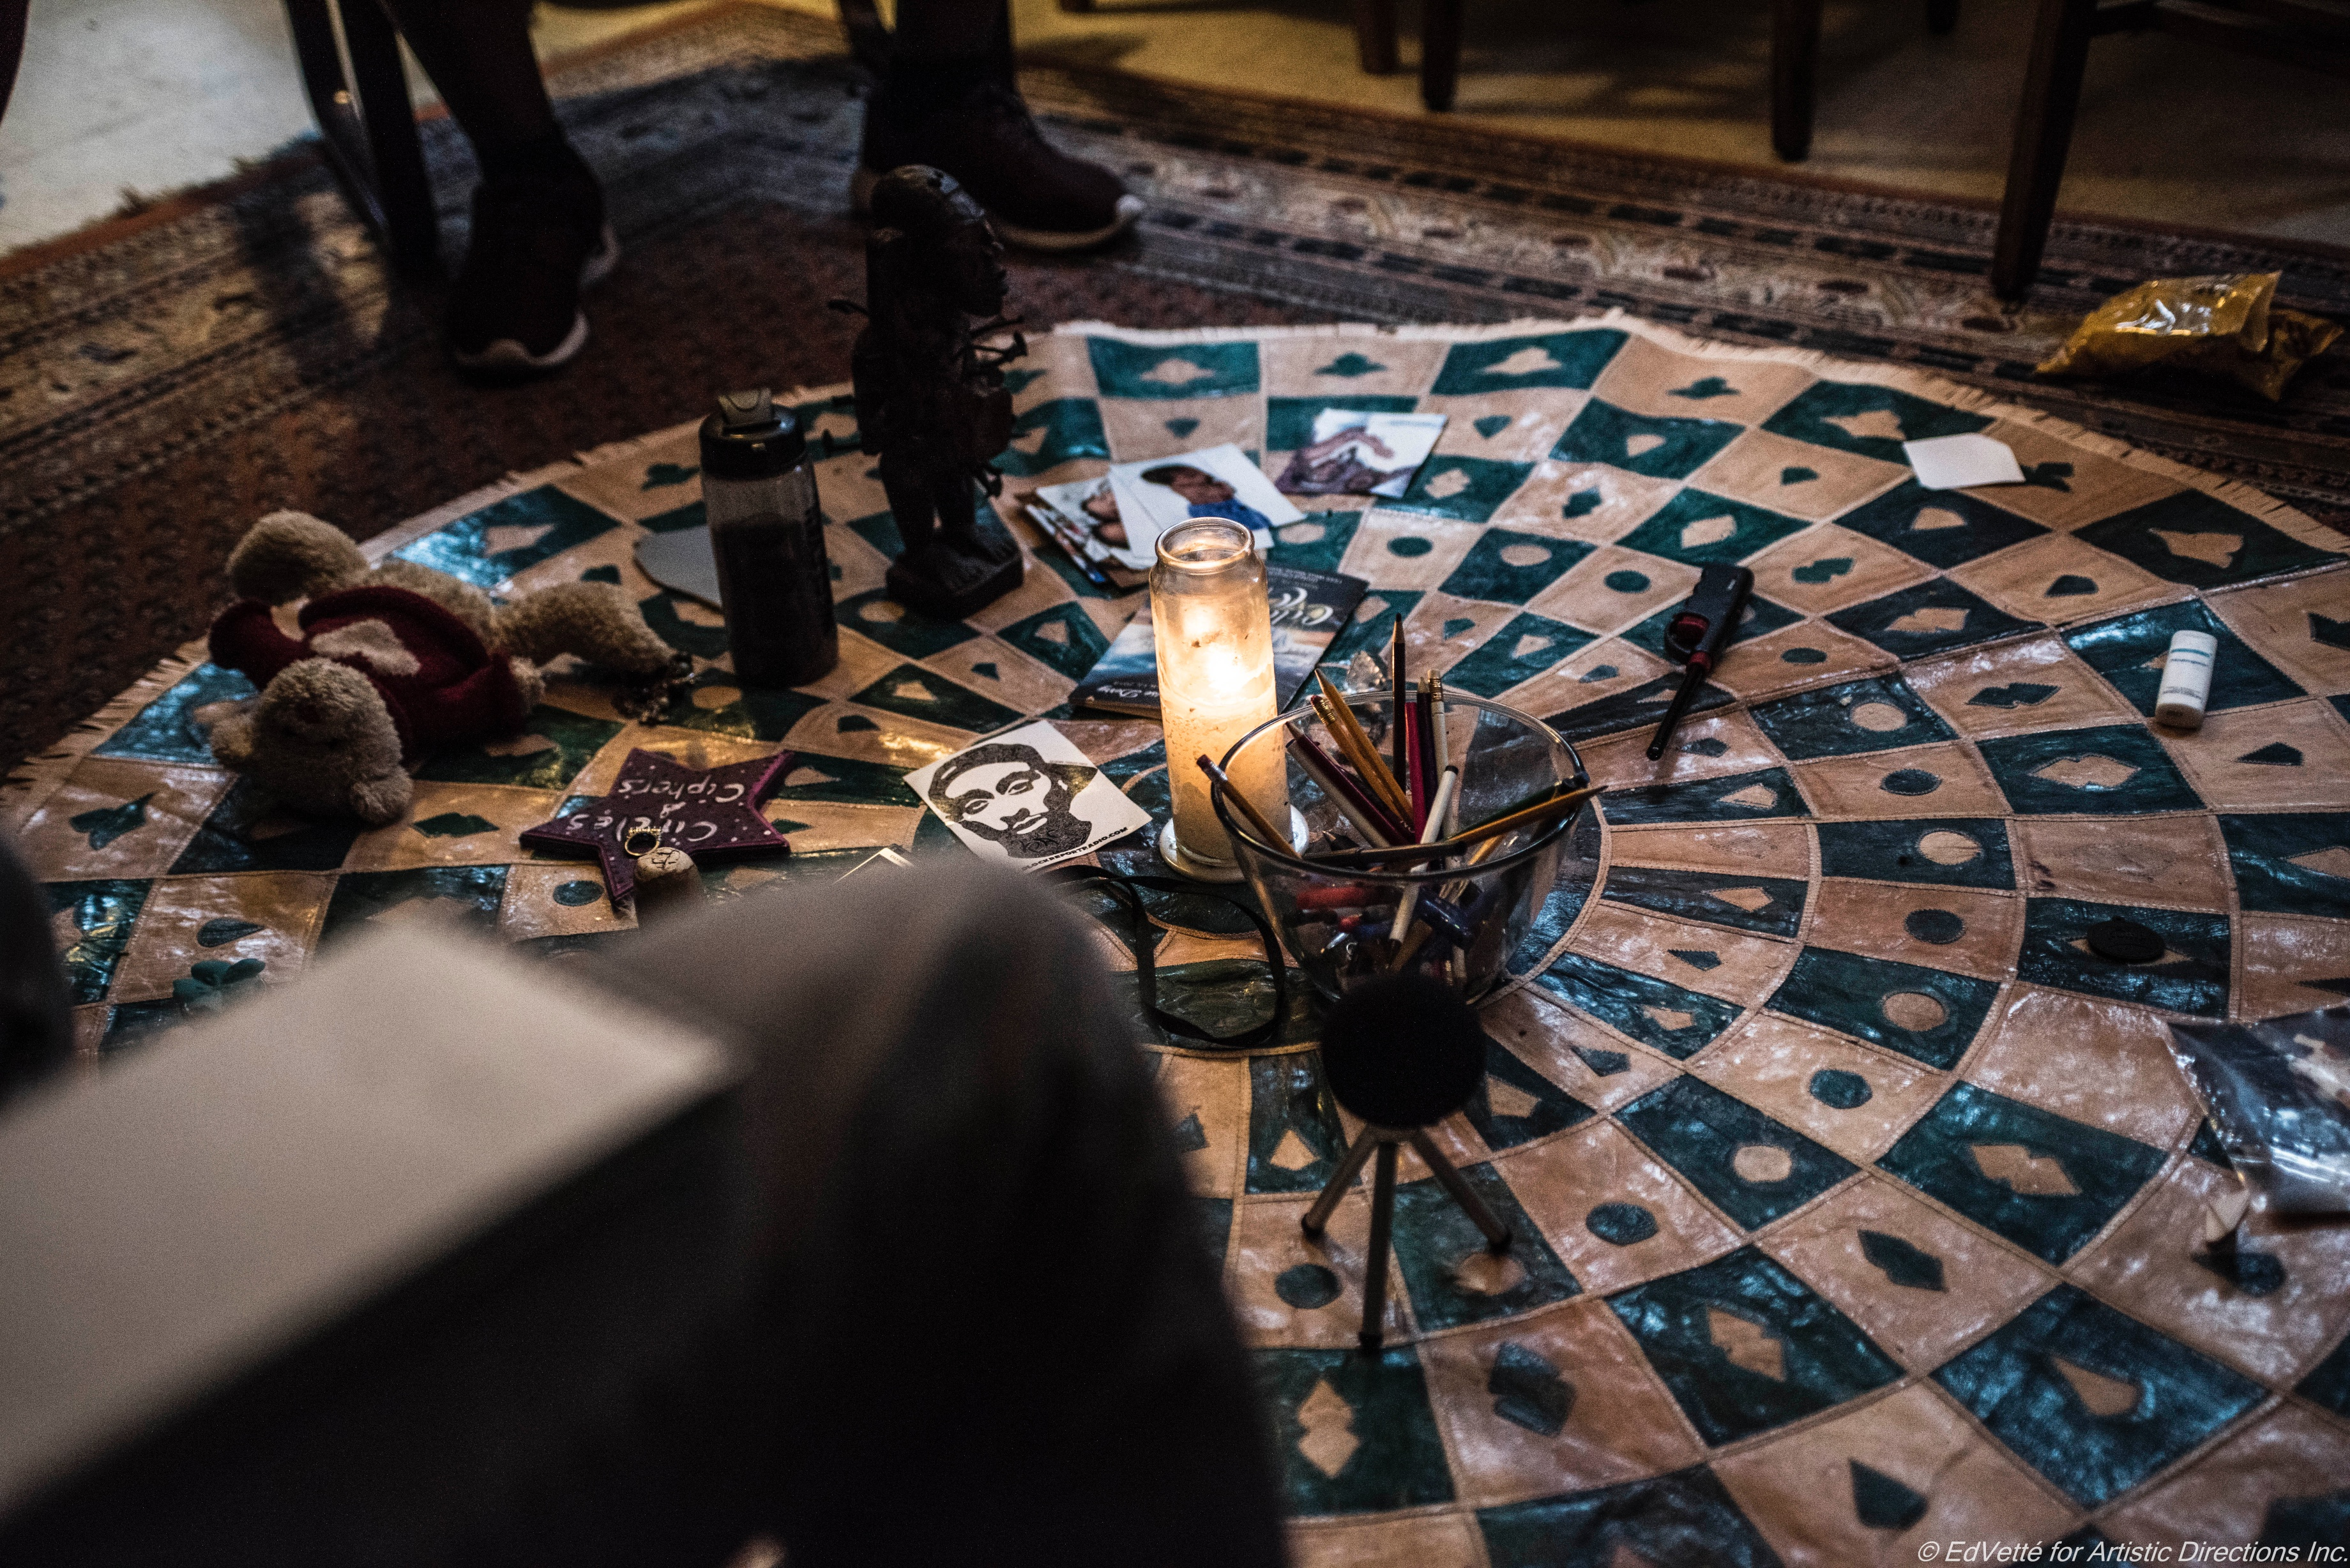 Atop a decorative mat sits a lit candle, a cup of writing instruments, some symbolic images, talking pieces, and small statues forming the centerpiece of a circle at the start of a planning meeting for teaching artists for Envisioning Justice at Circles and Ciphers.